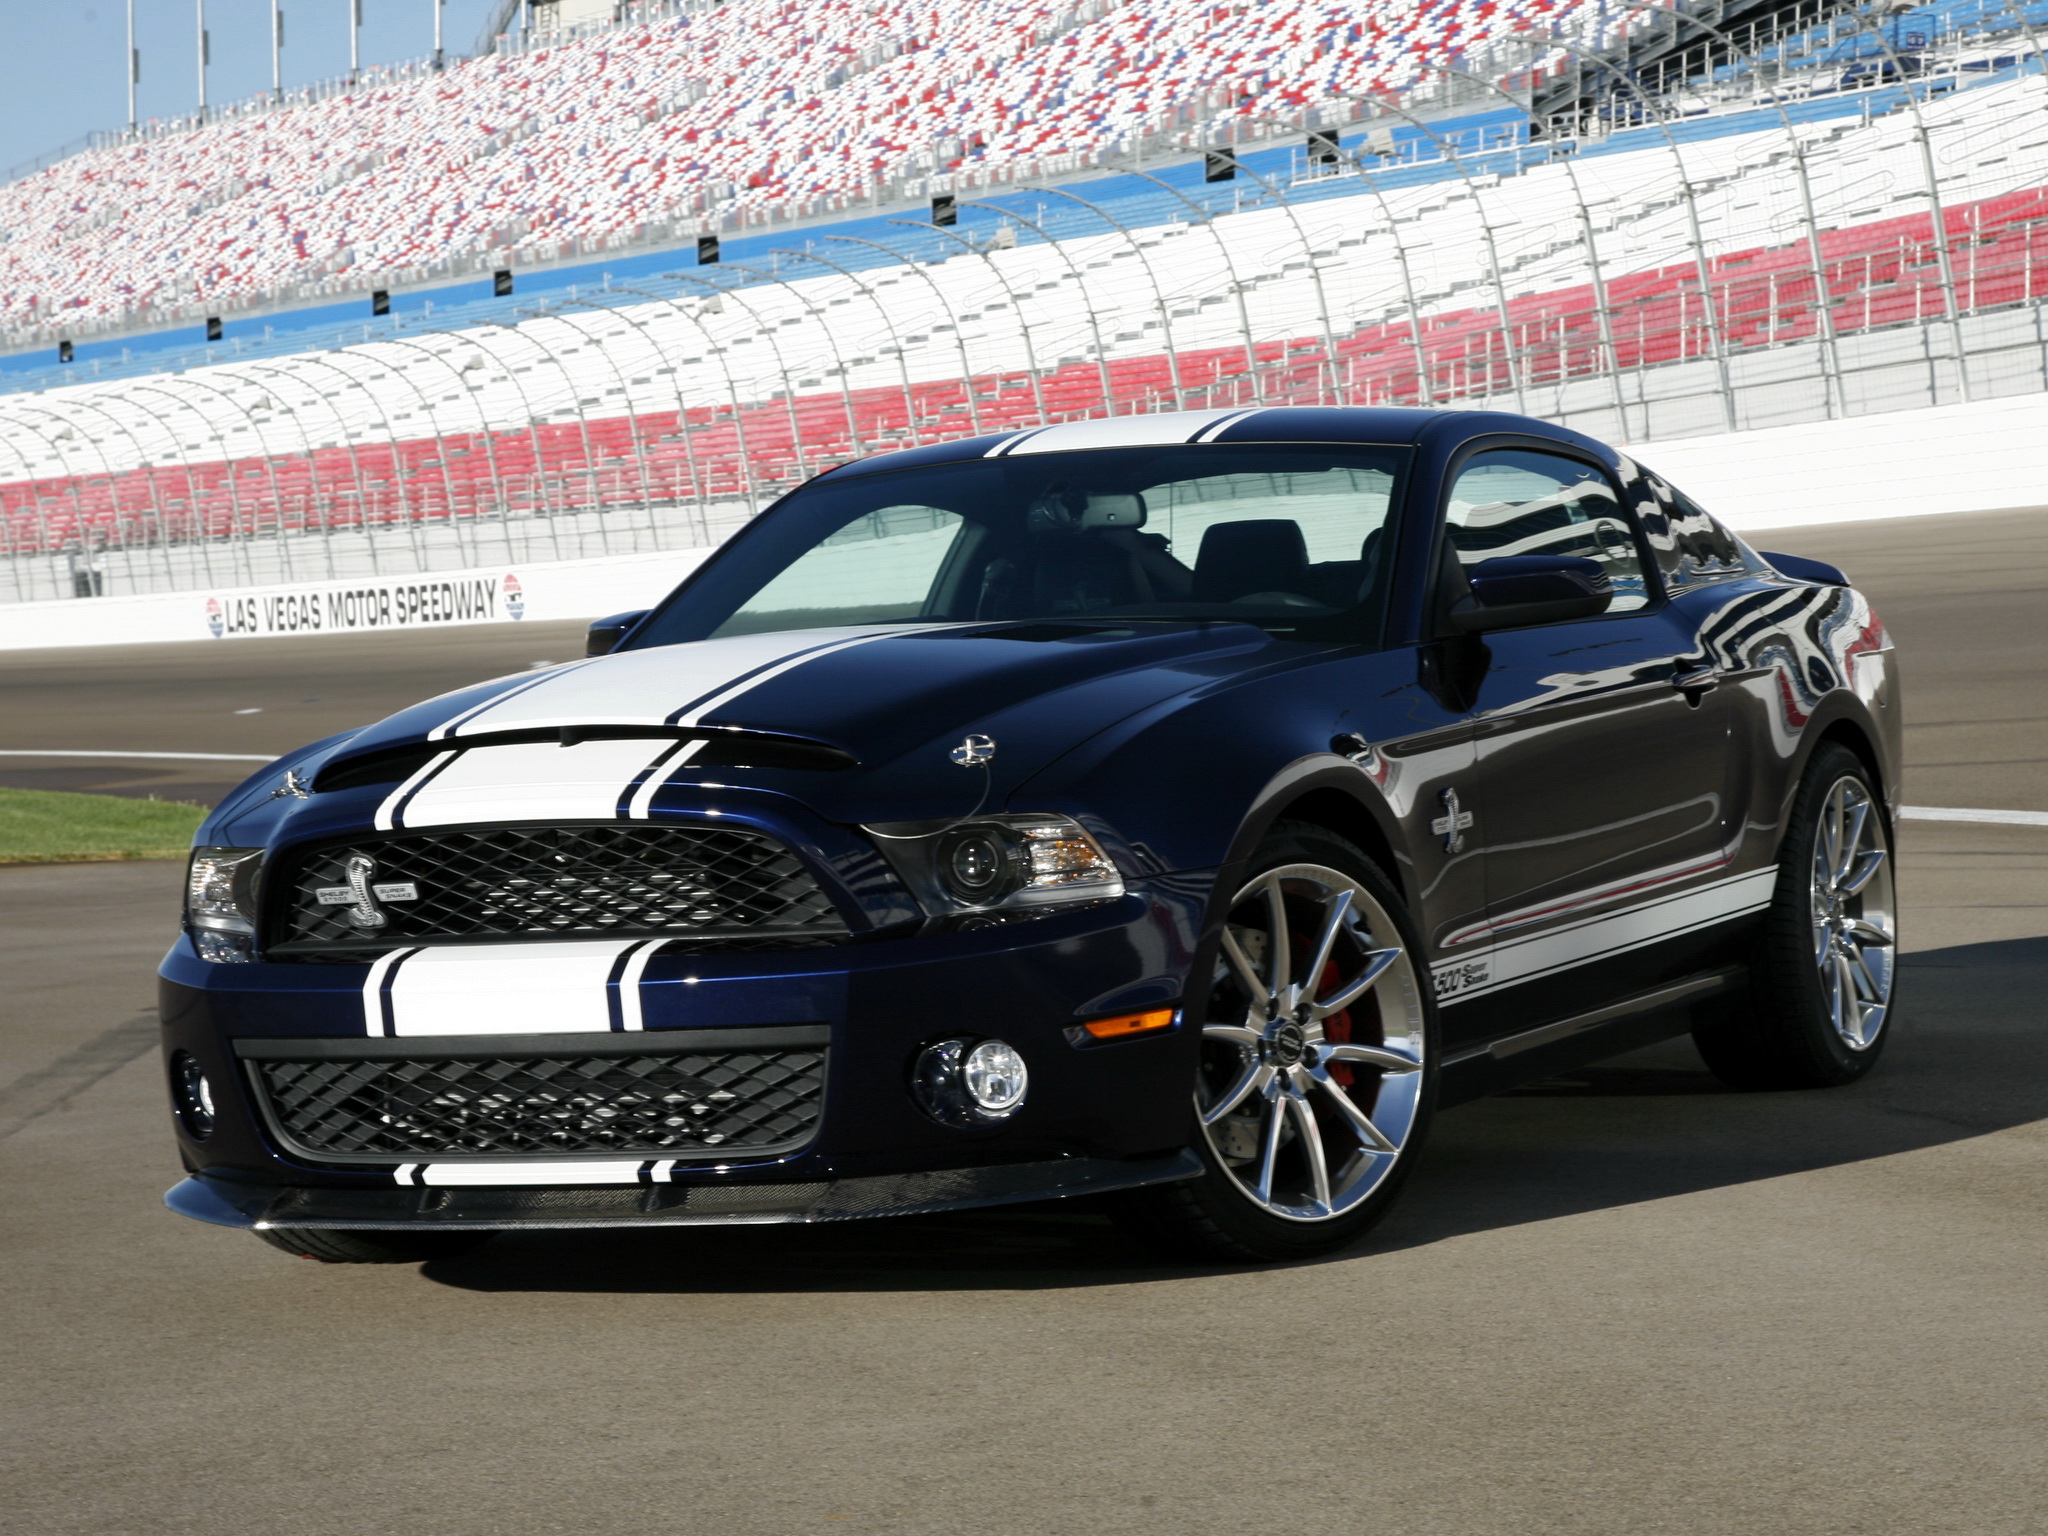 2010 shelby gt500 super snake ford mustang muscle f wallpaper - Mustang 2014 Black Wallpaper